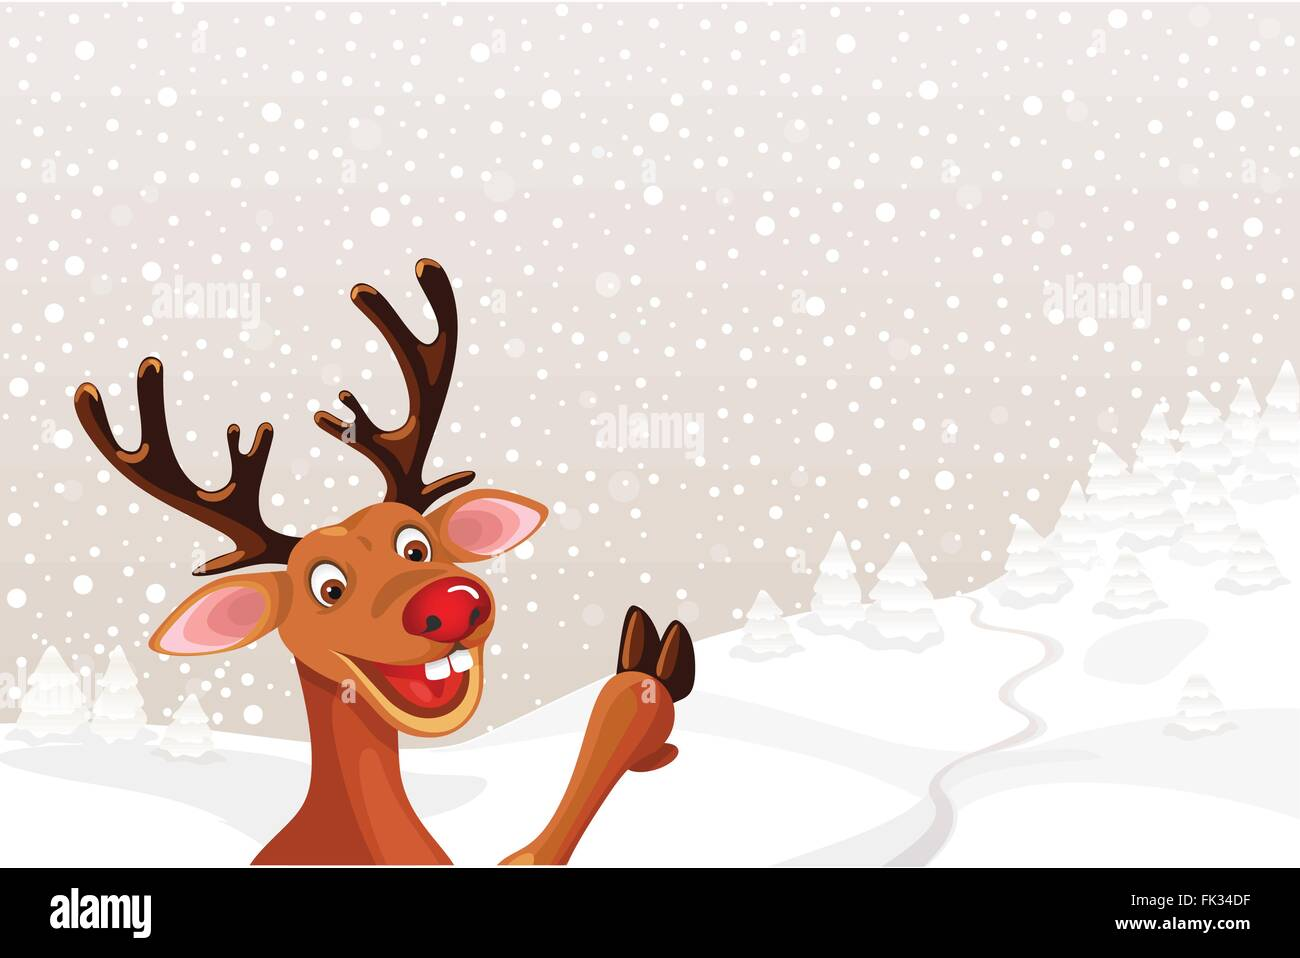 Reindeer with copy space on Christmas landscape - Stock Image